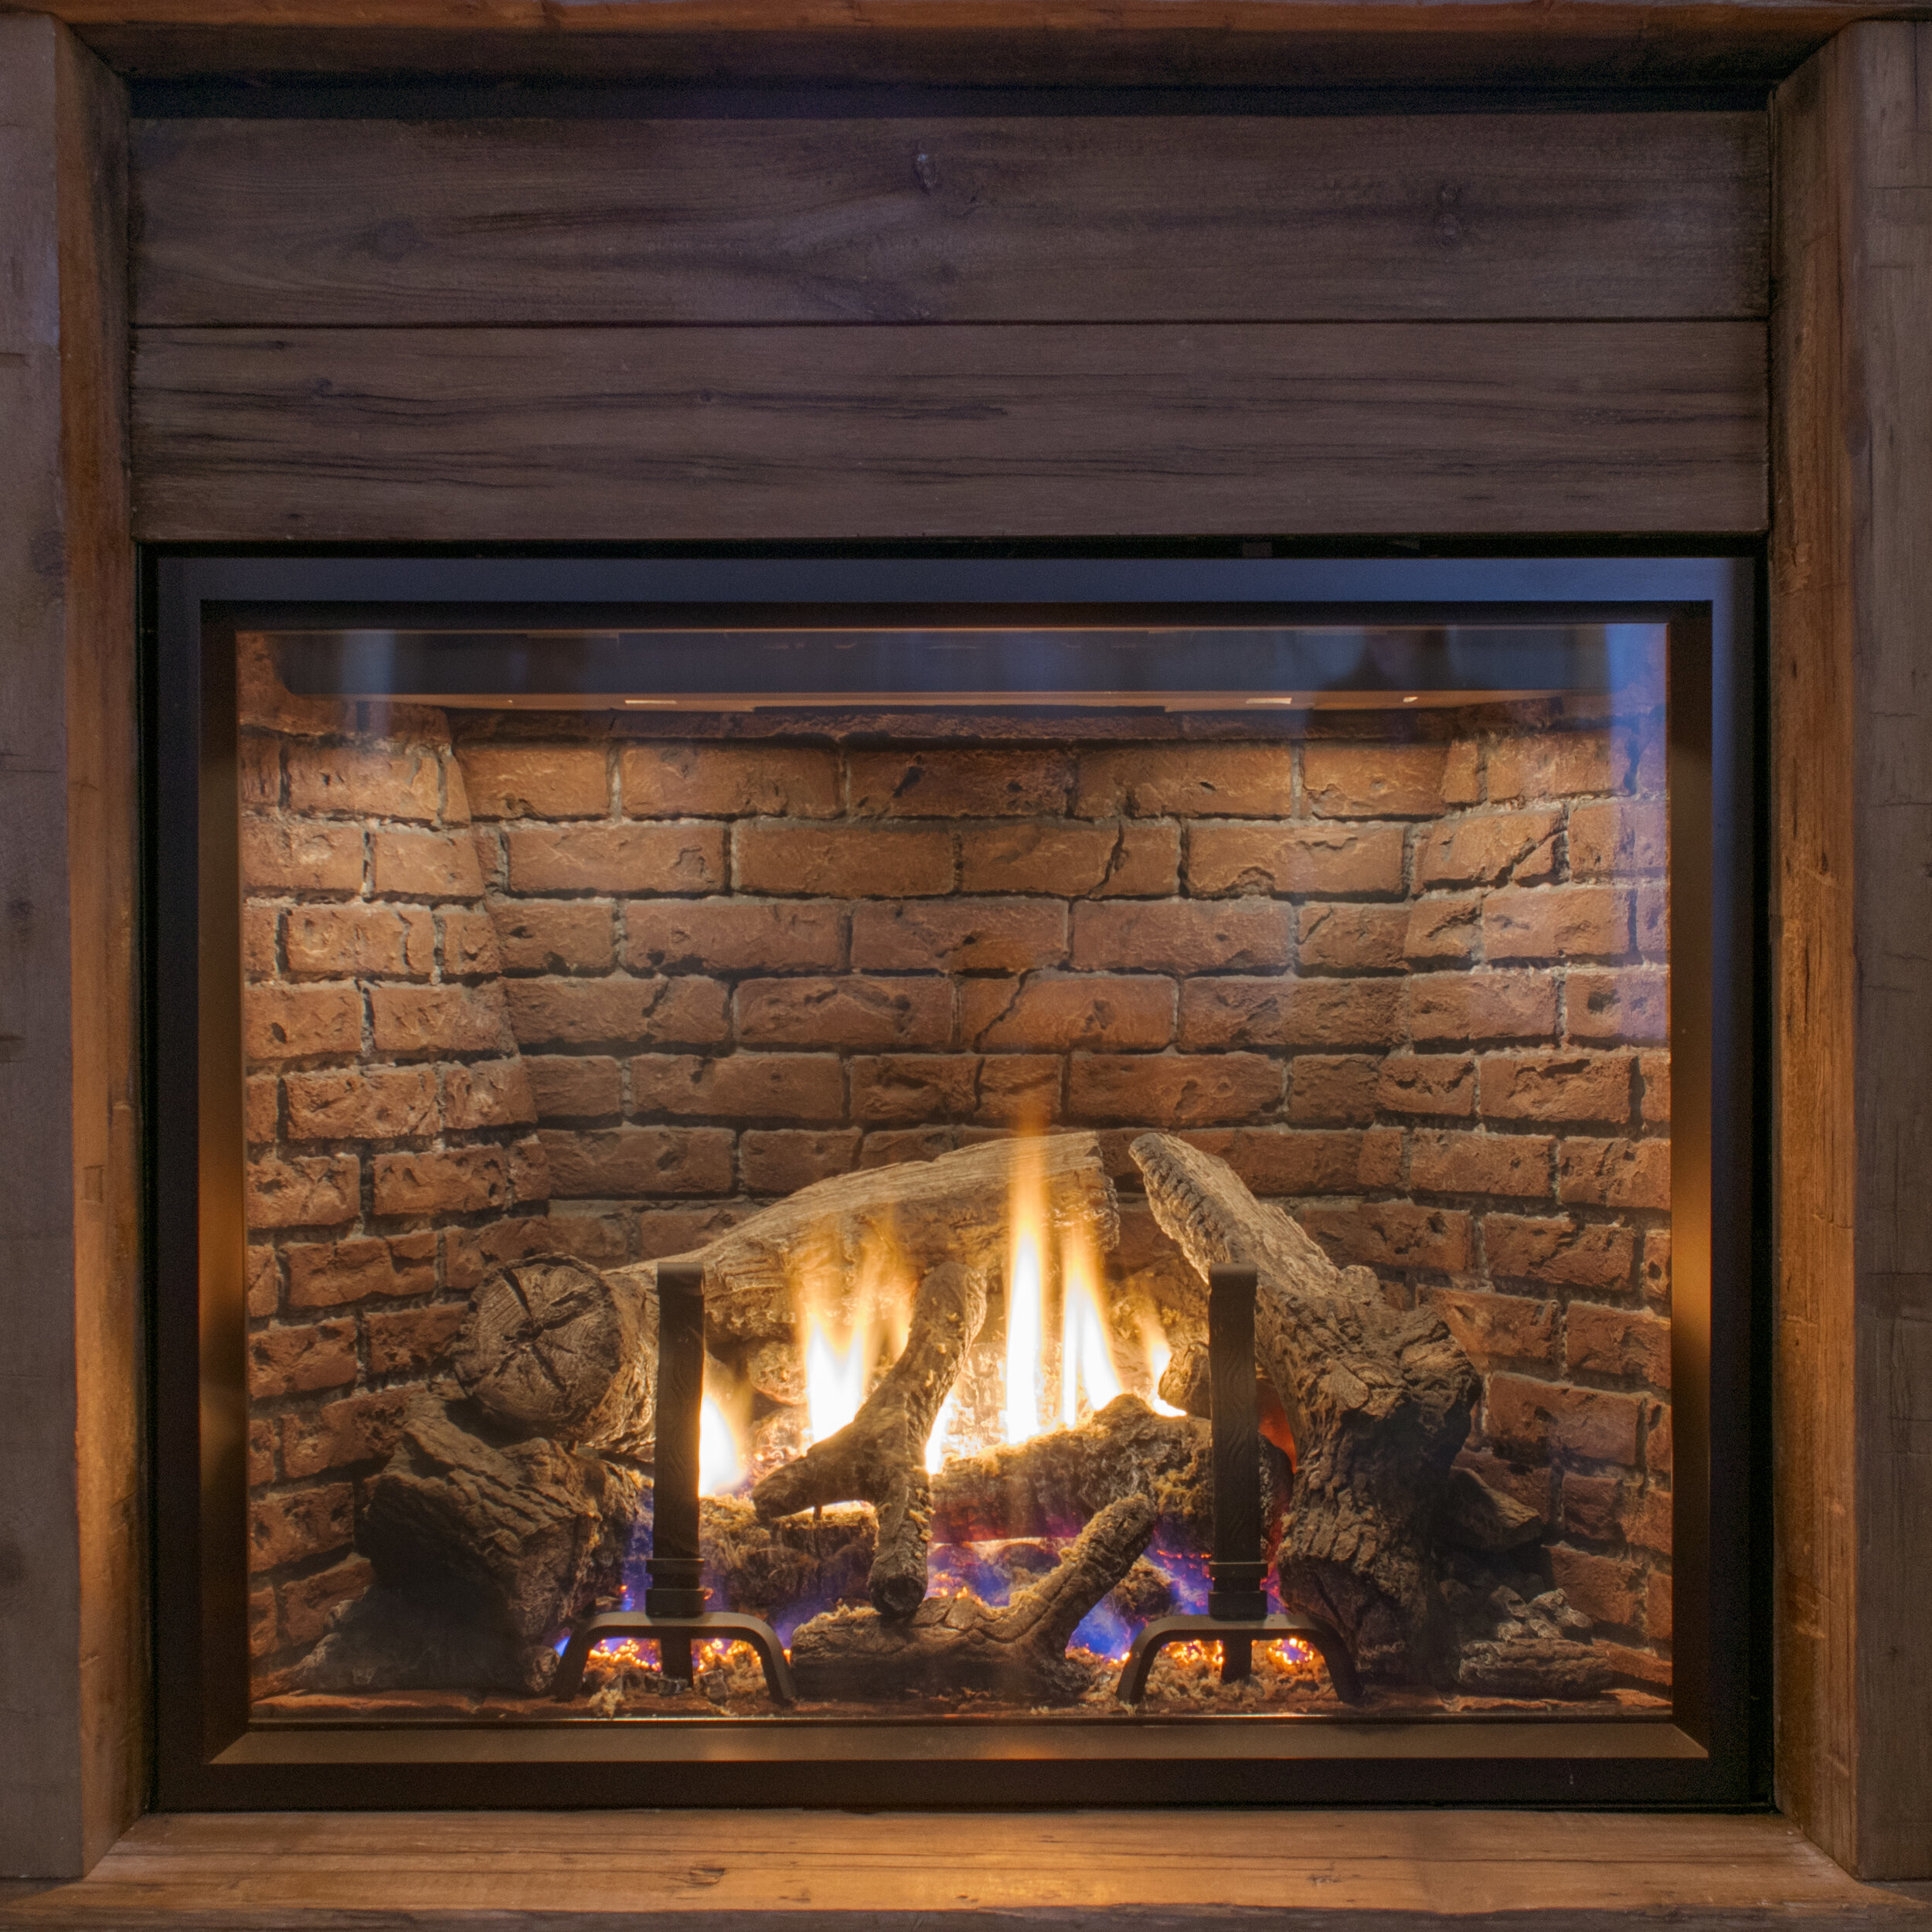 American Hearth Renegade 50 - · Direct Vent Gas Fireplace – 56,500 BTU· Fire Cracked Brick Firebox Panels· Clean Face Trim Kit· Forest Timber Log Set· Decorative Andirons· Optional Convection Fan· Quality gas fireplace· Impressive Log Set